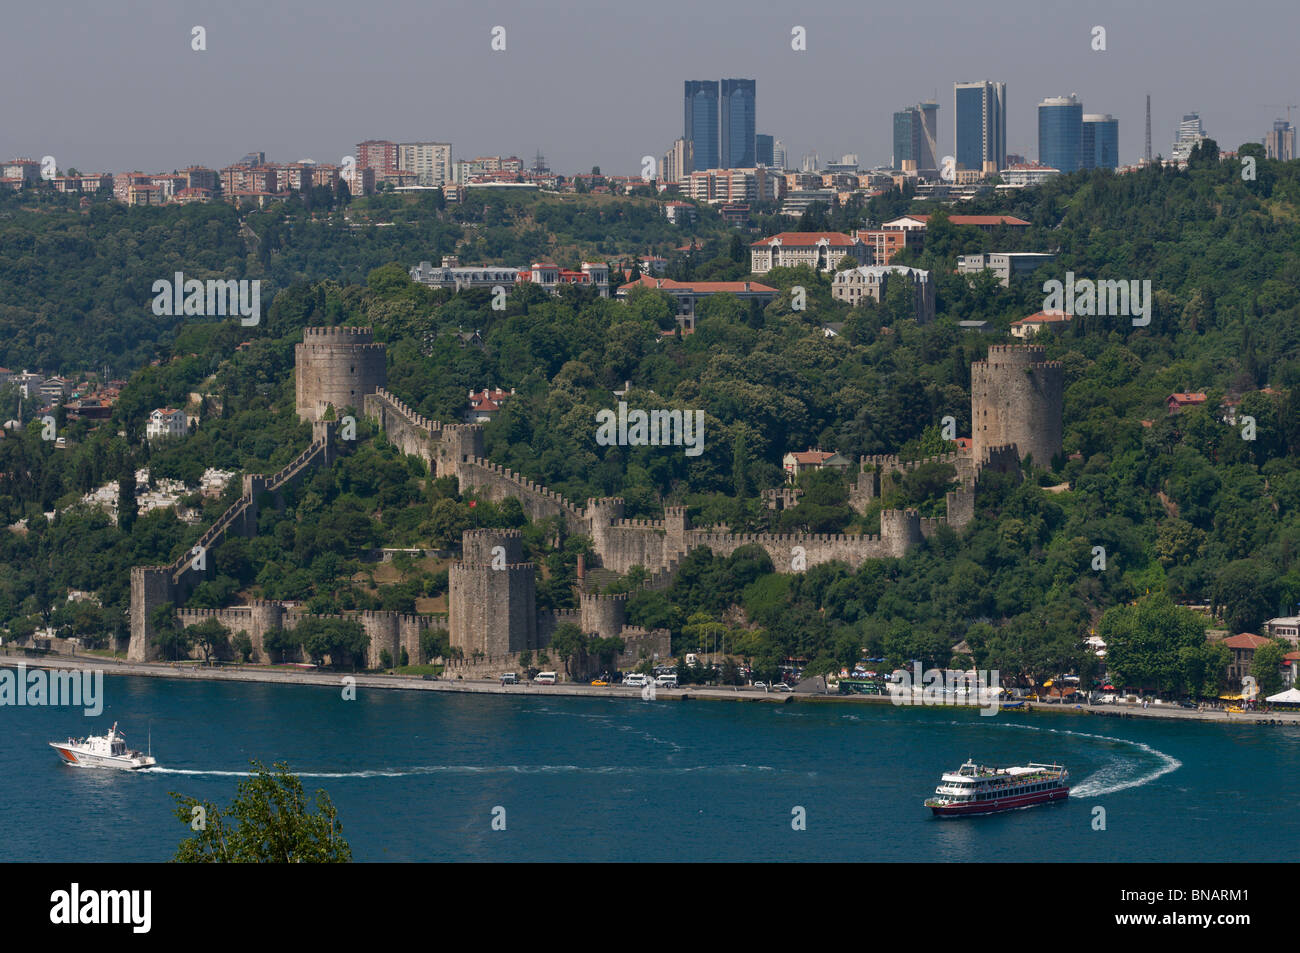 Rumelihisar Castle,Bosphorus,istanbul,Turkey Stock Photo